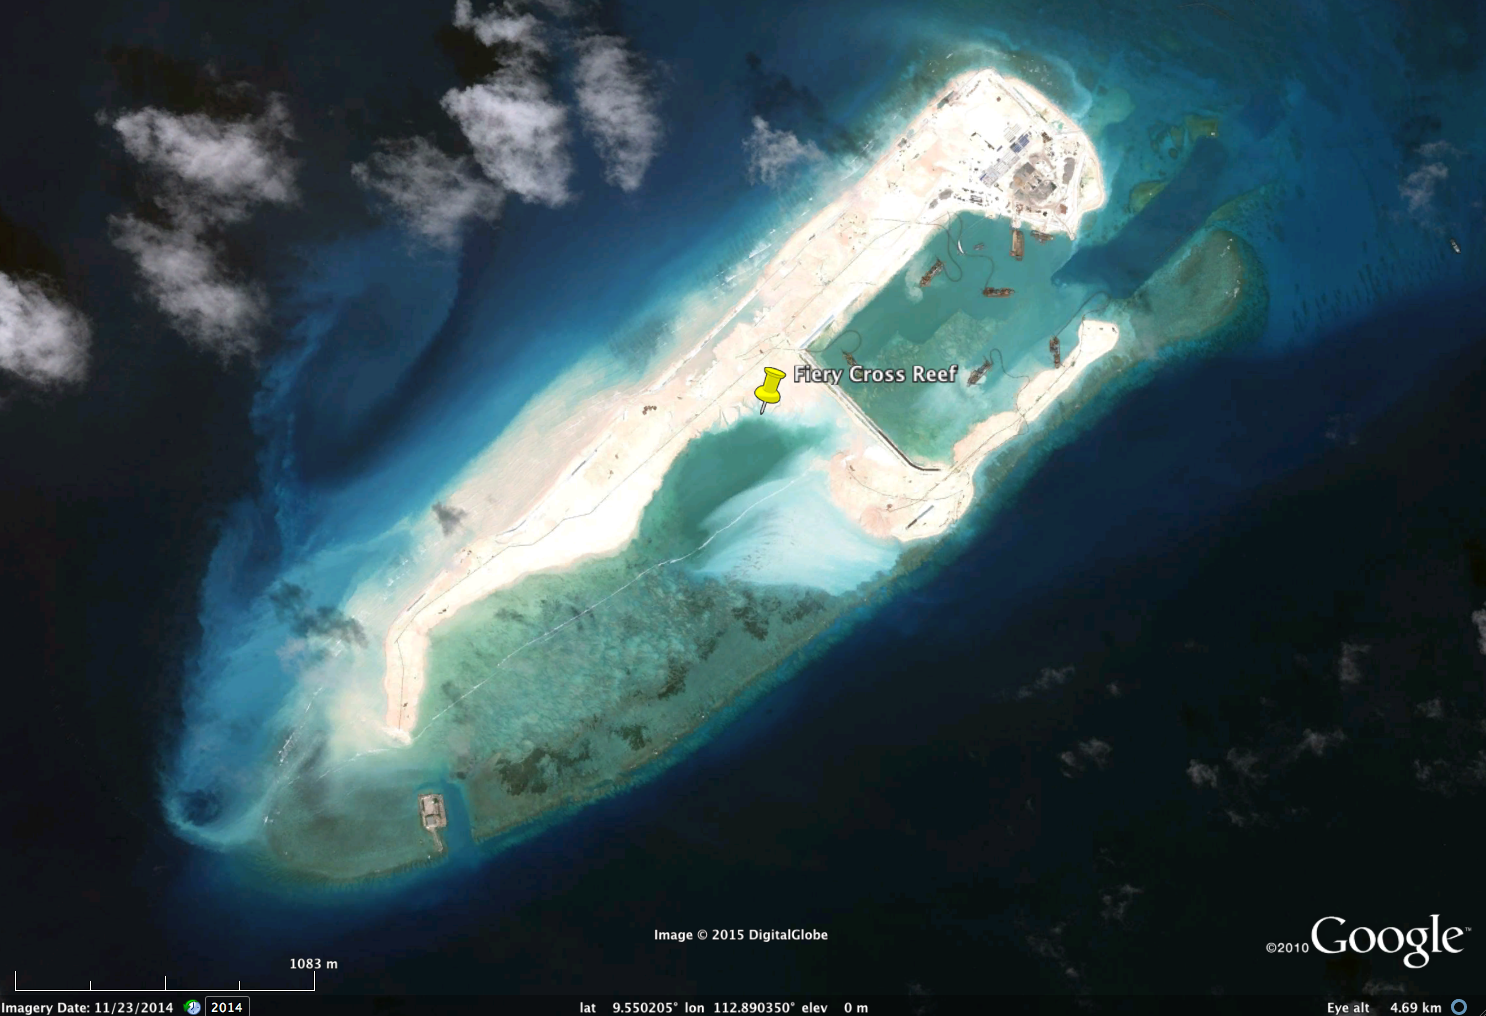 FieryCrossReef, Nov.23, 2014. Bright white and light brown areas are 'reclaimed' land, i.e., where sediments have beendredged from adjacent seafloor areas and pumped on top of live coral reefs (which dieonce smothered). Note presence of dredge/pump ships within newly-created 'harbour'. Also note light blue wisps, which are likely sediment plumes, flowing away from the island.Image copyright DigitalGlobe, via Google.